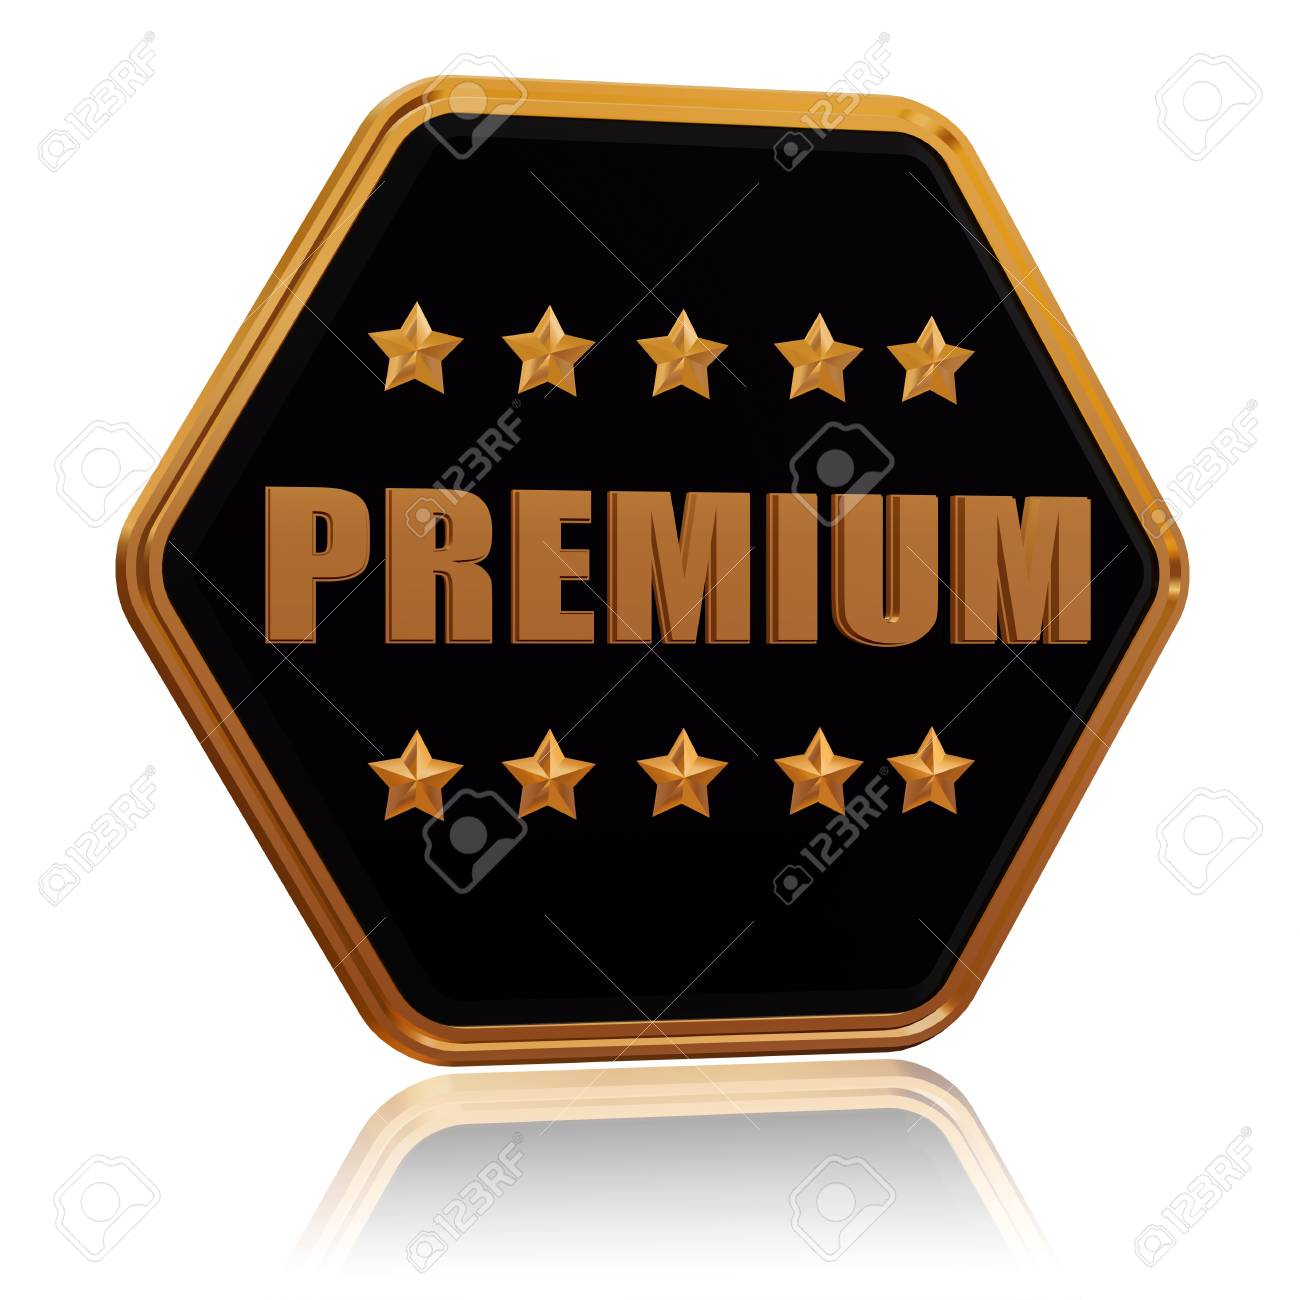 premium - 3d black golden hexagon button with text and five stars Stock Photo - 17570084